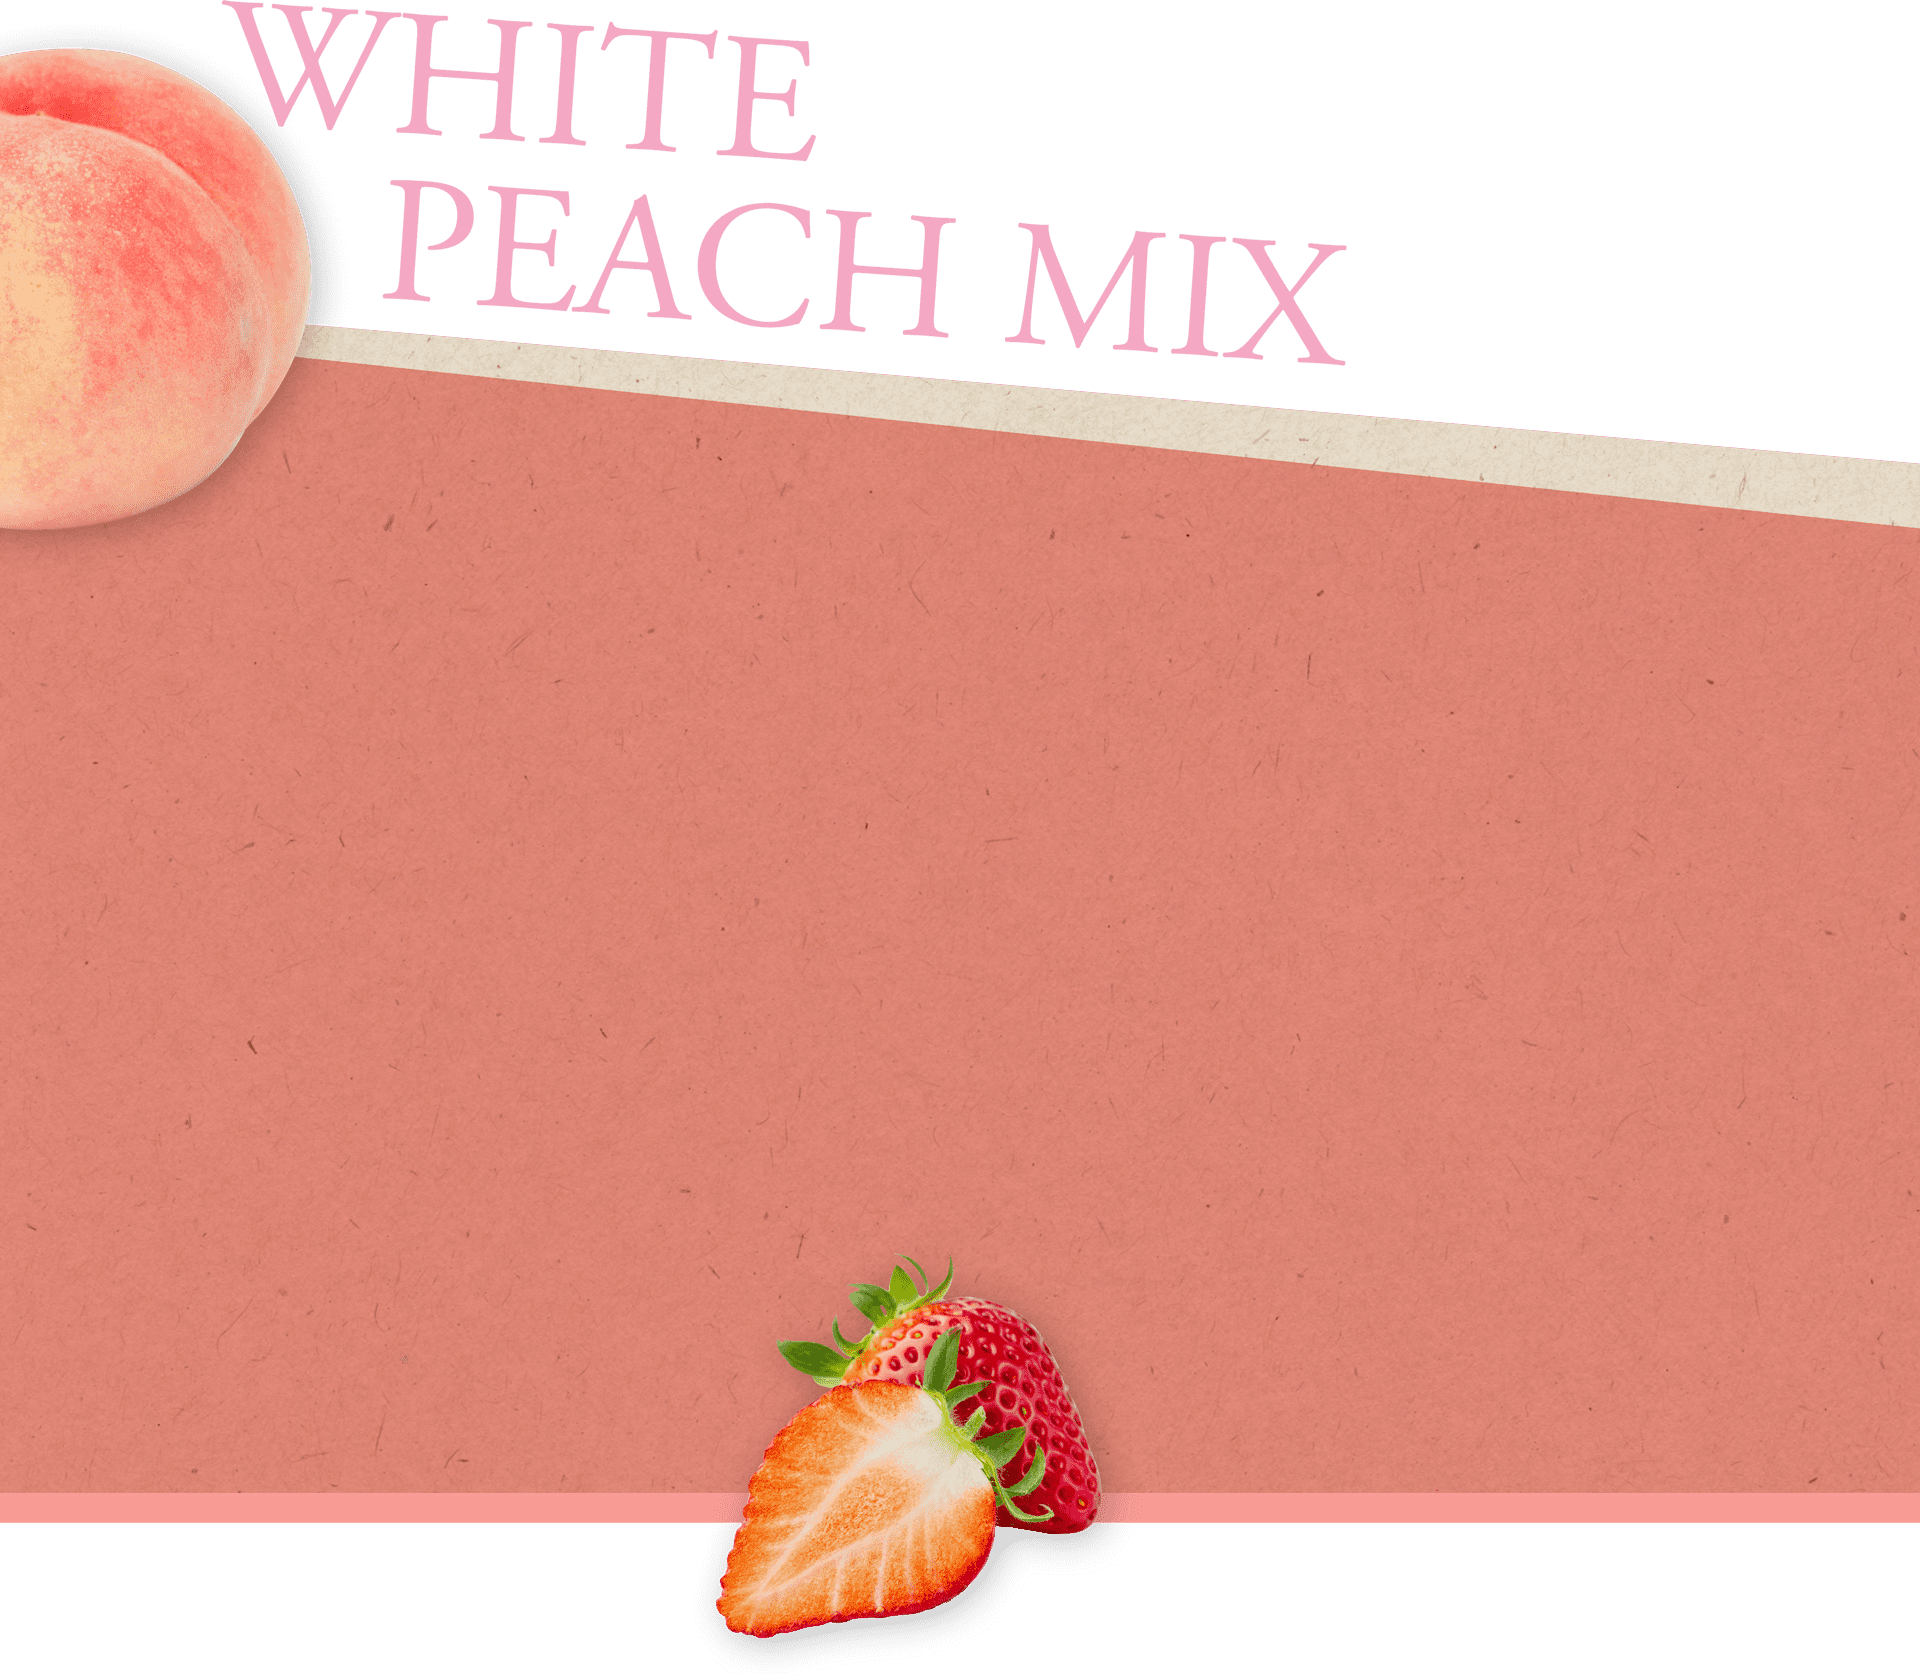 WHITE PEACH MIX